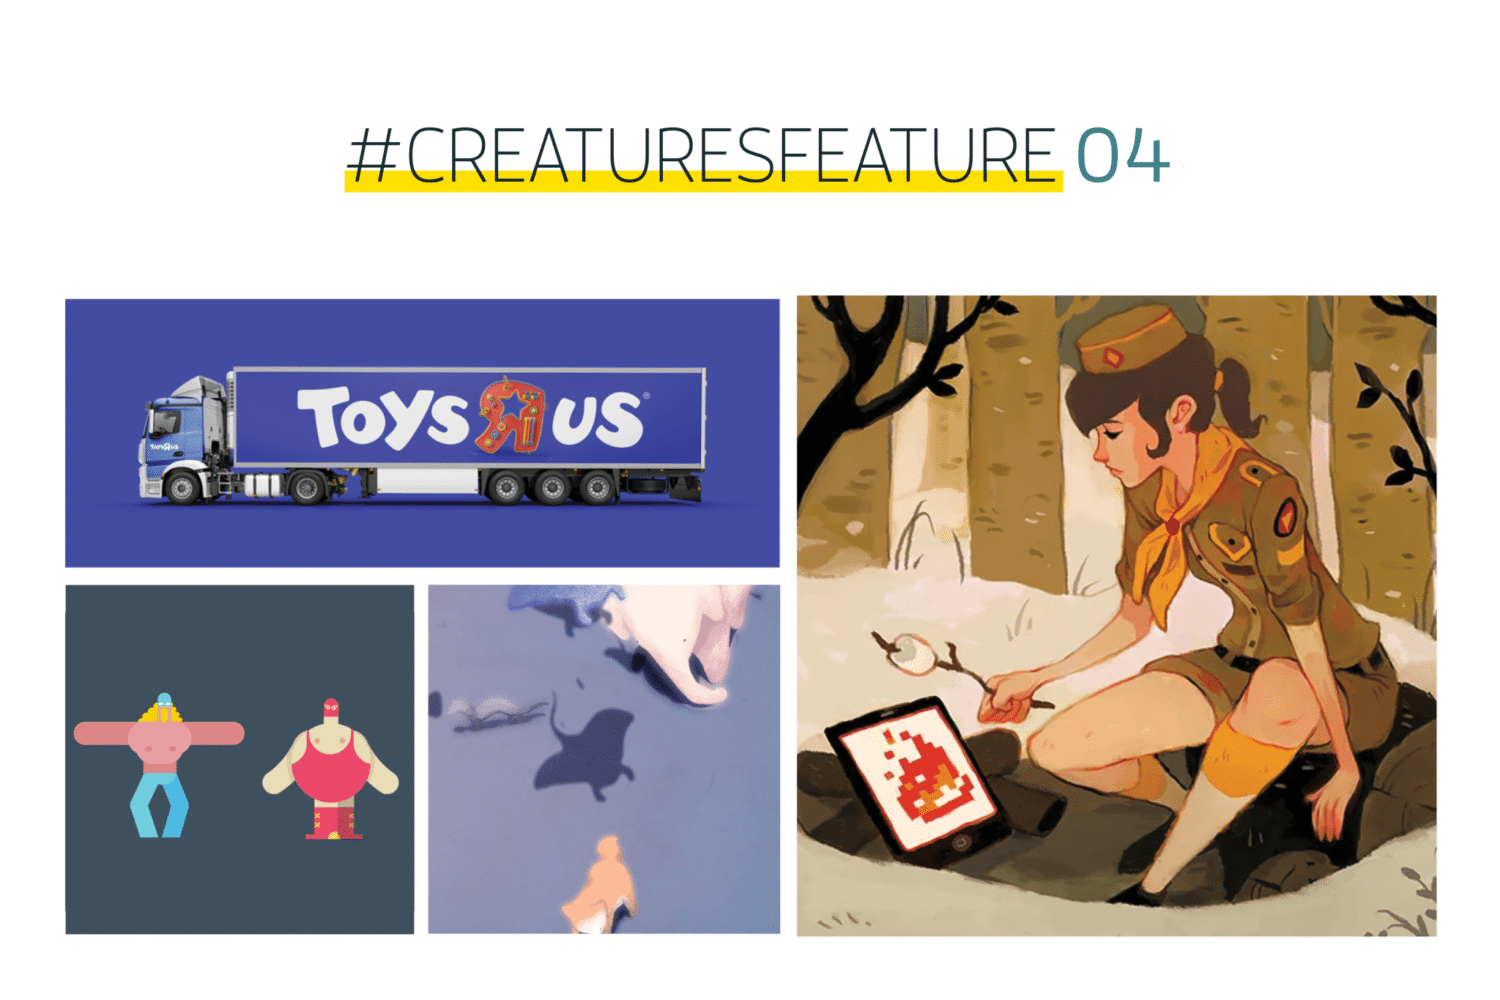 Creatures Feature 04